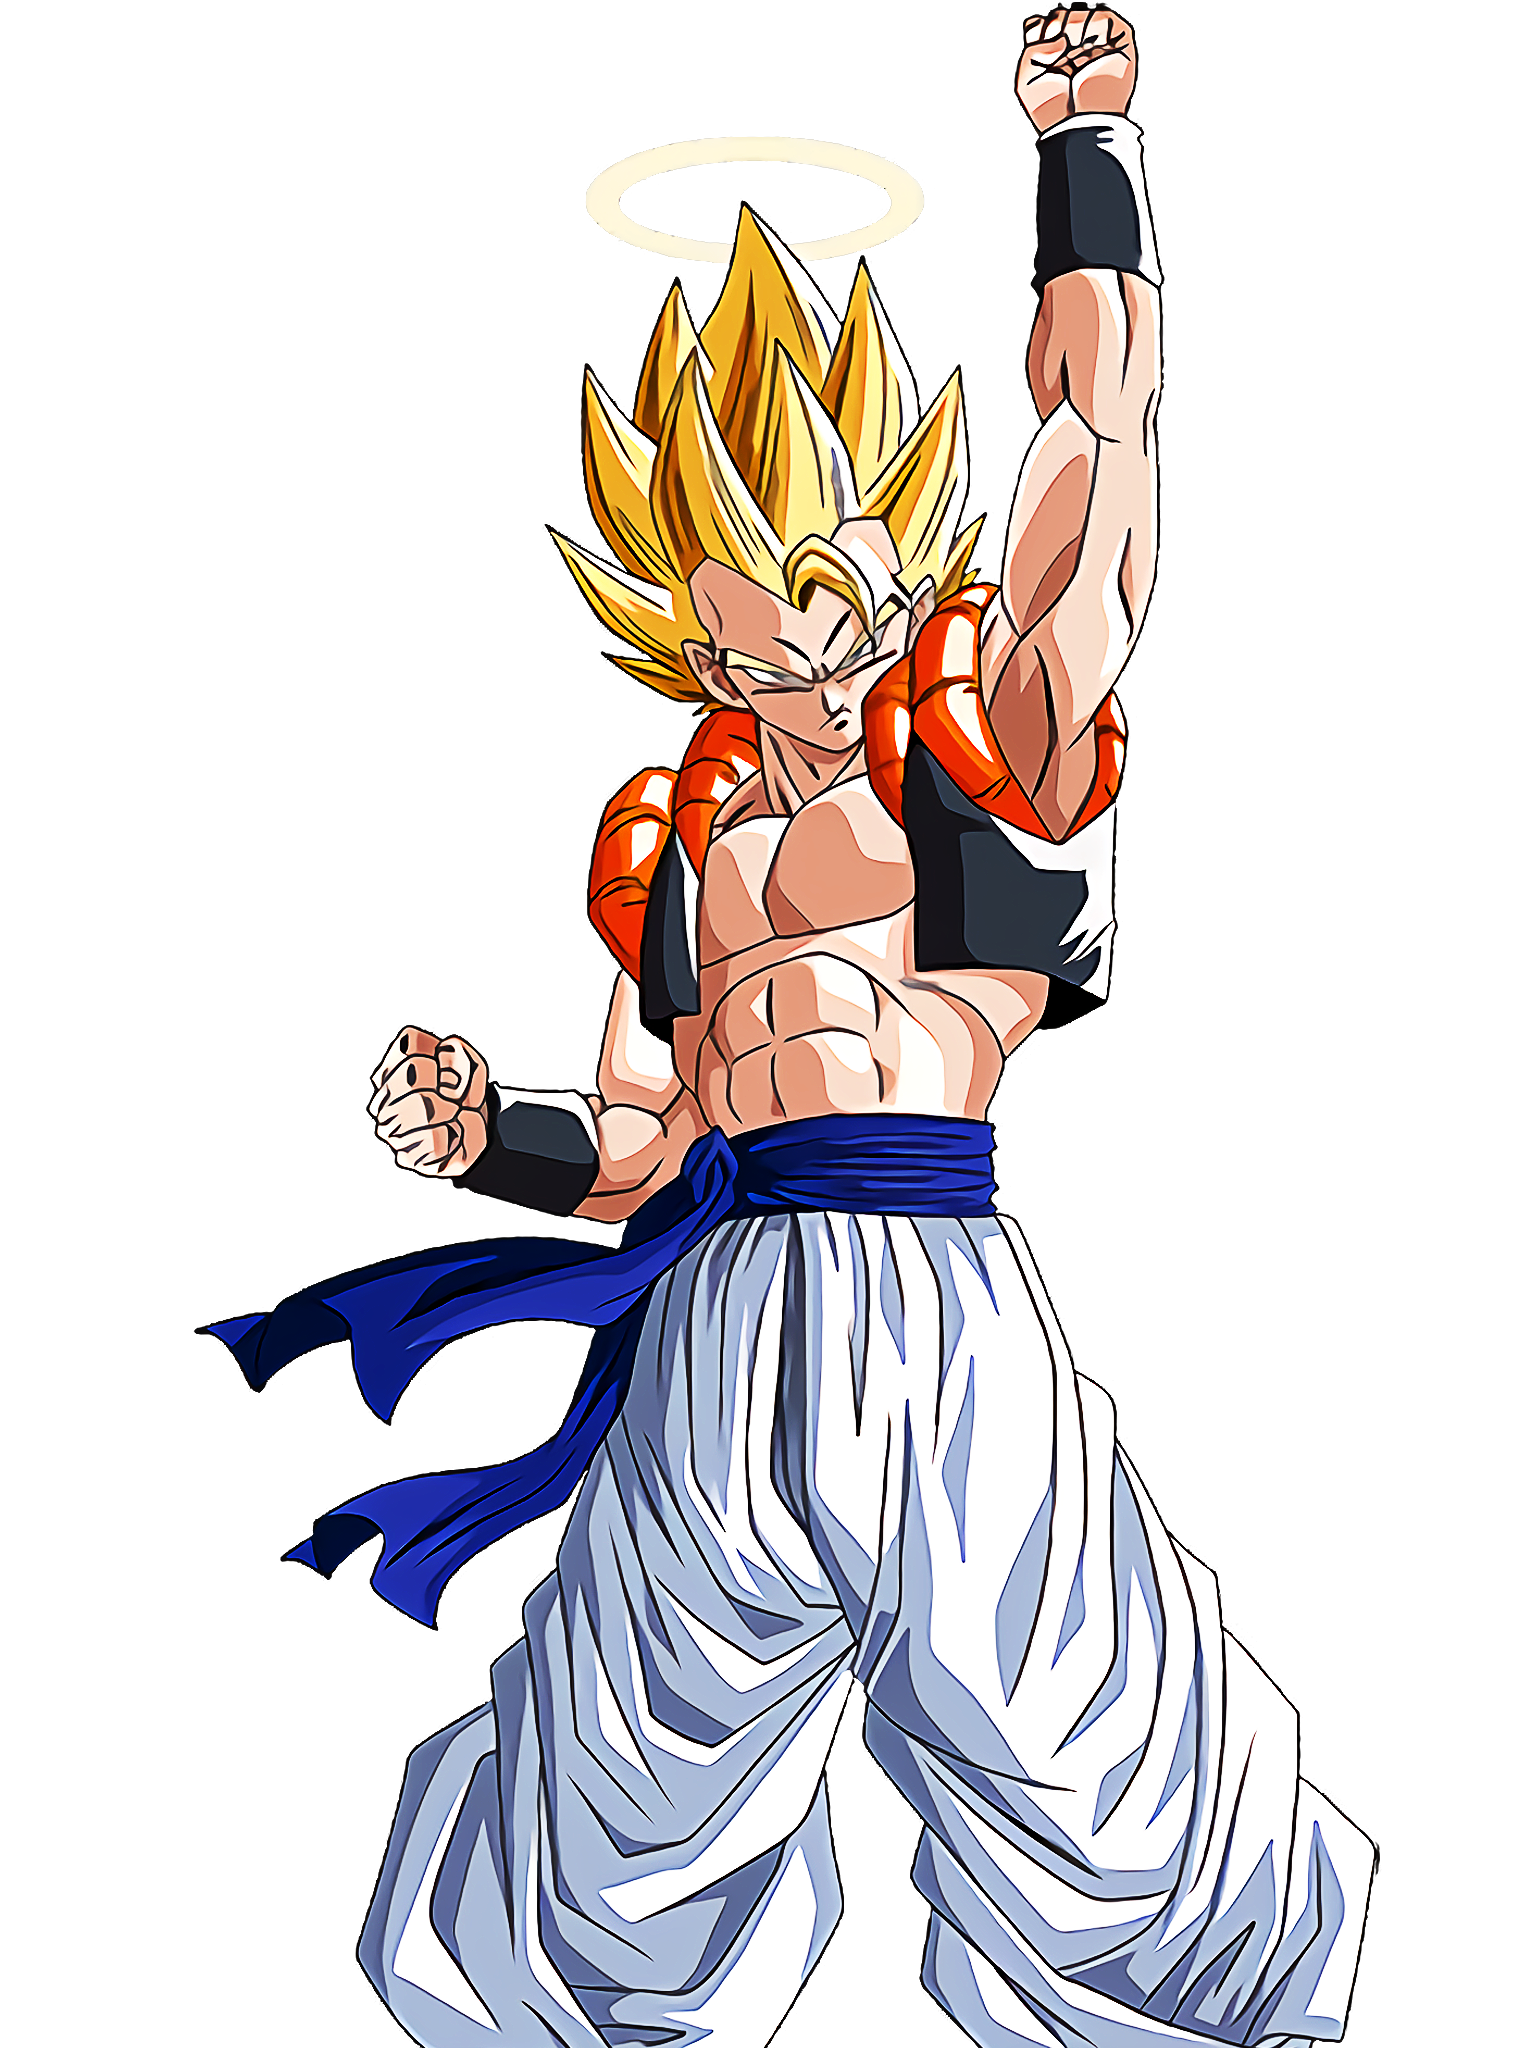 Super Gogeta Asset 2 Render (Dragon Ball Z Dokkan Battle) .png